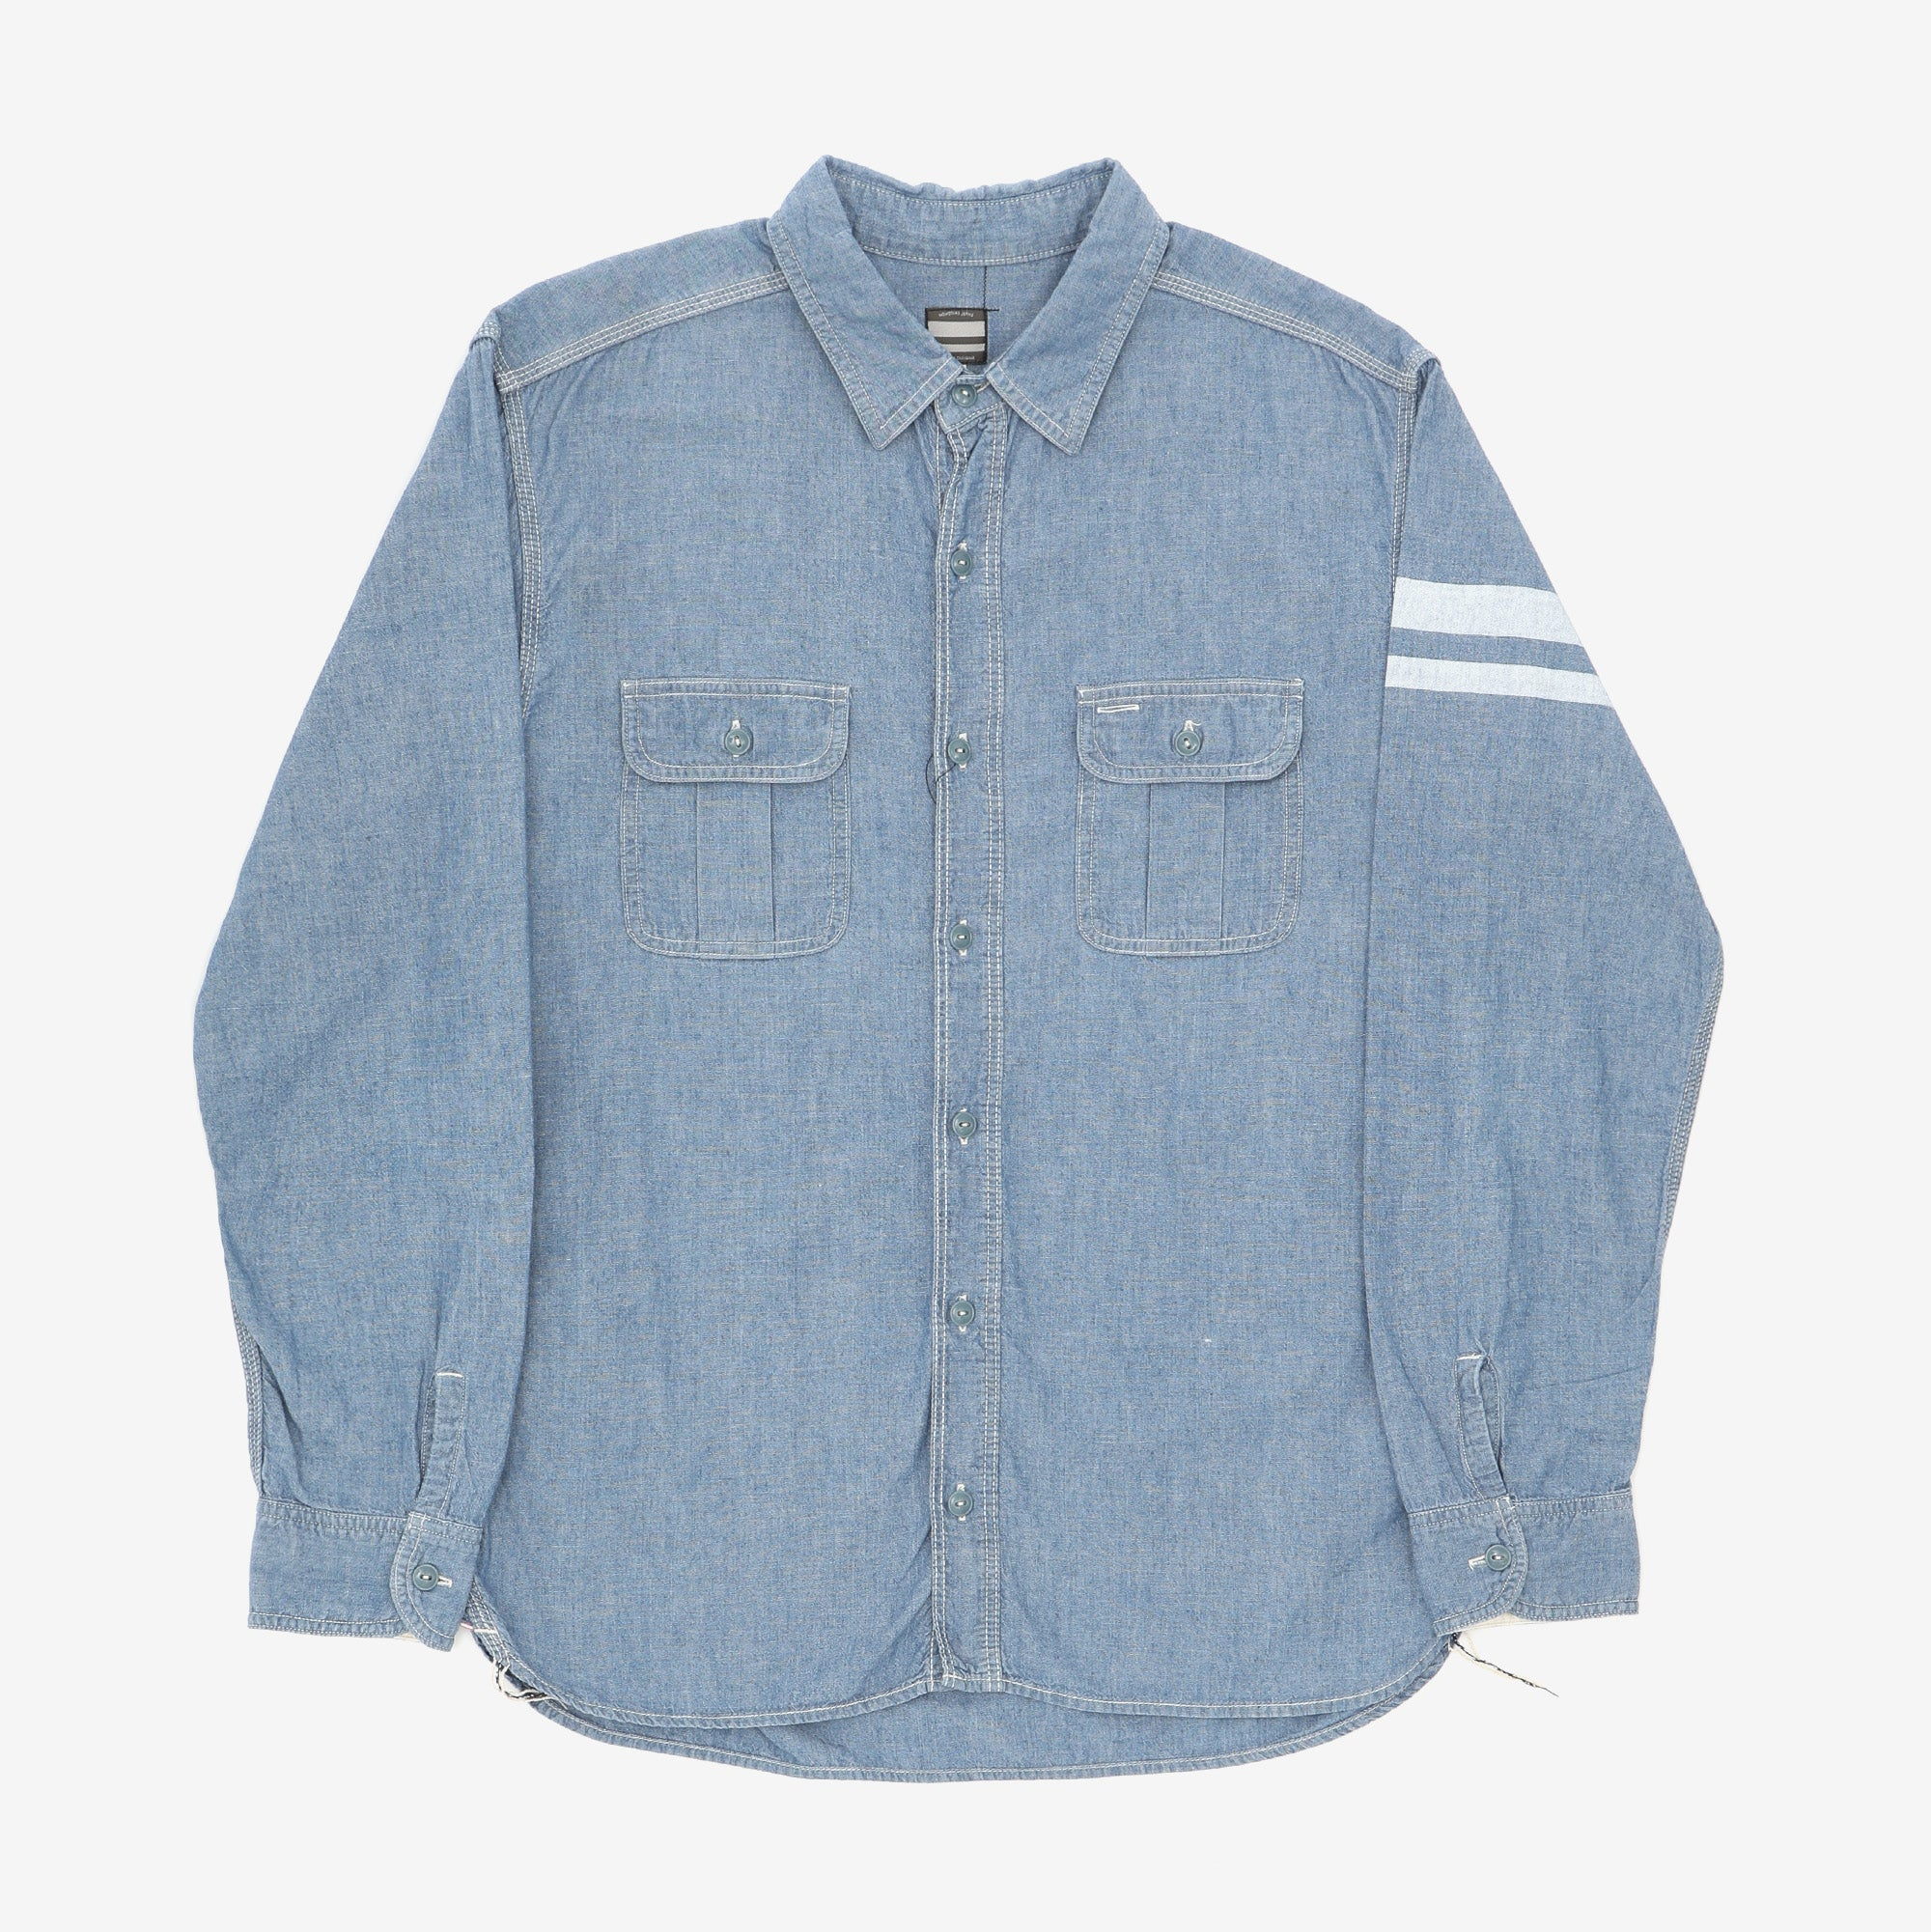 5oz Chambray Work Shirt